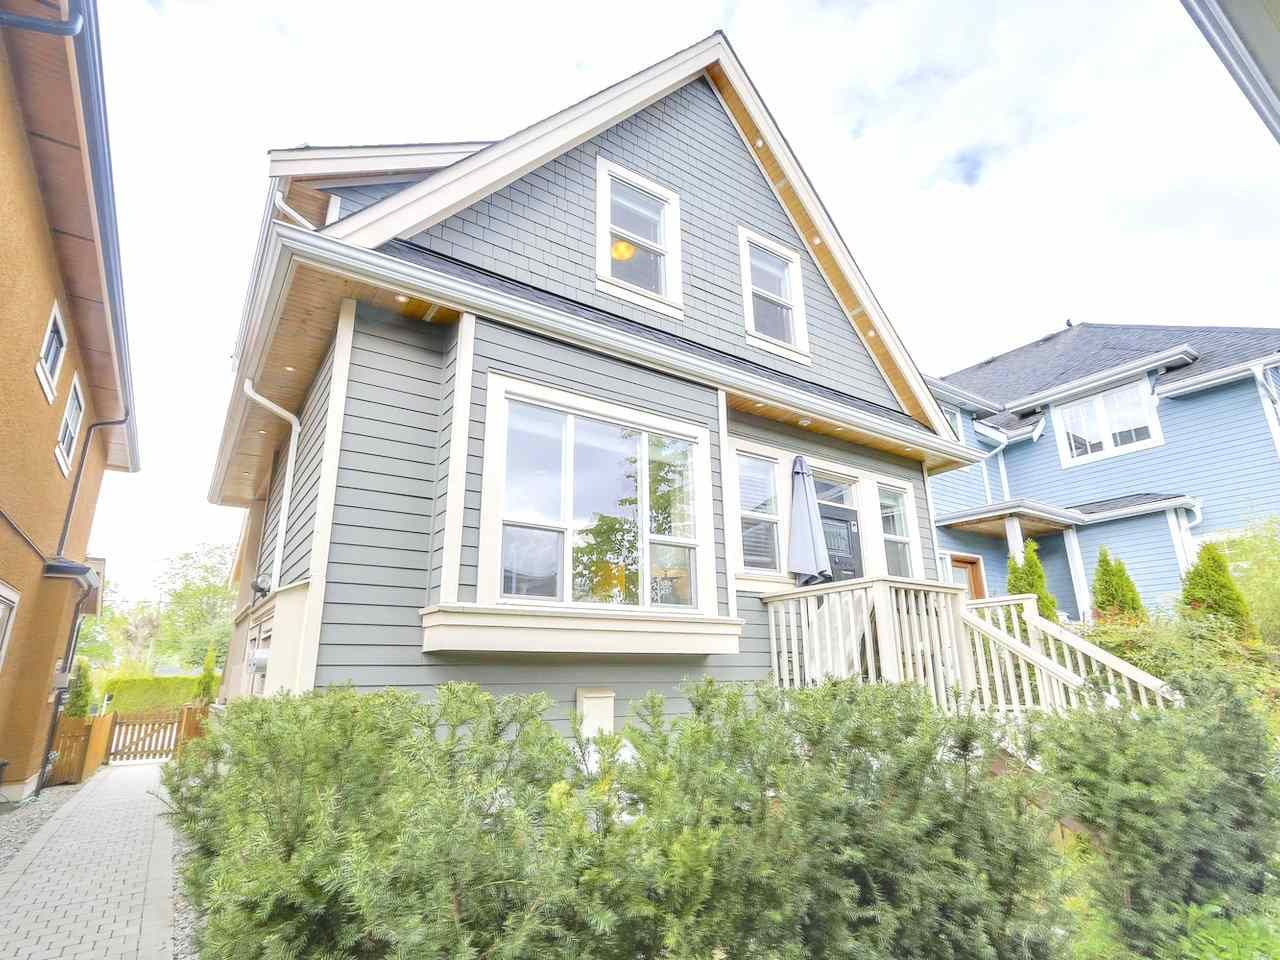 Main Photo: 1180 E KING EDWARD Avenue in Vancouver: Knight 1/2 Duplex for sale (Vancouver East)  : MLS®# R2310356